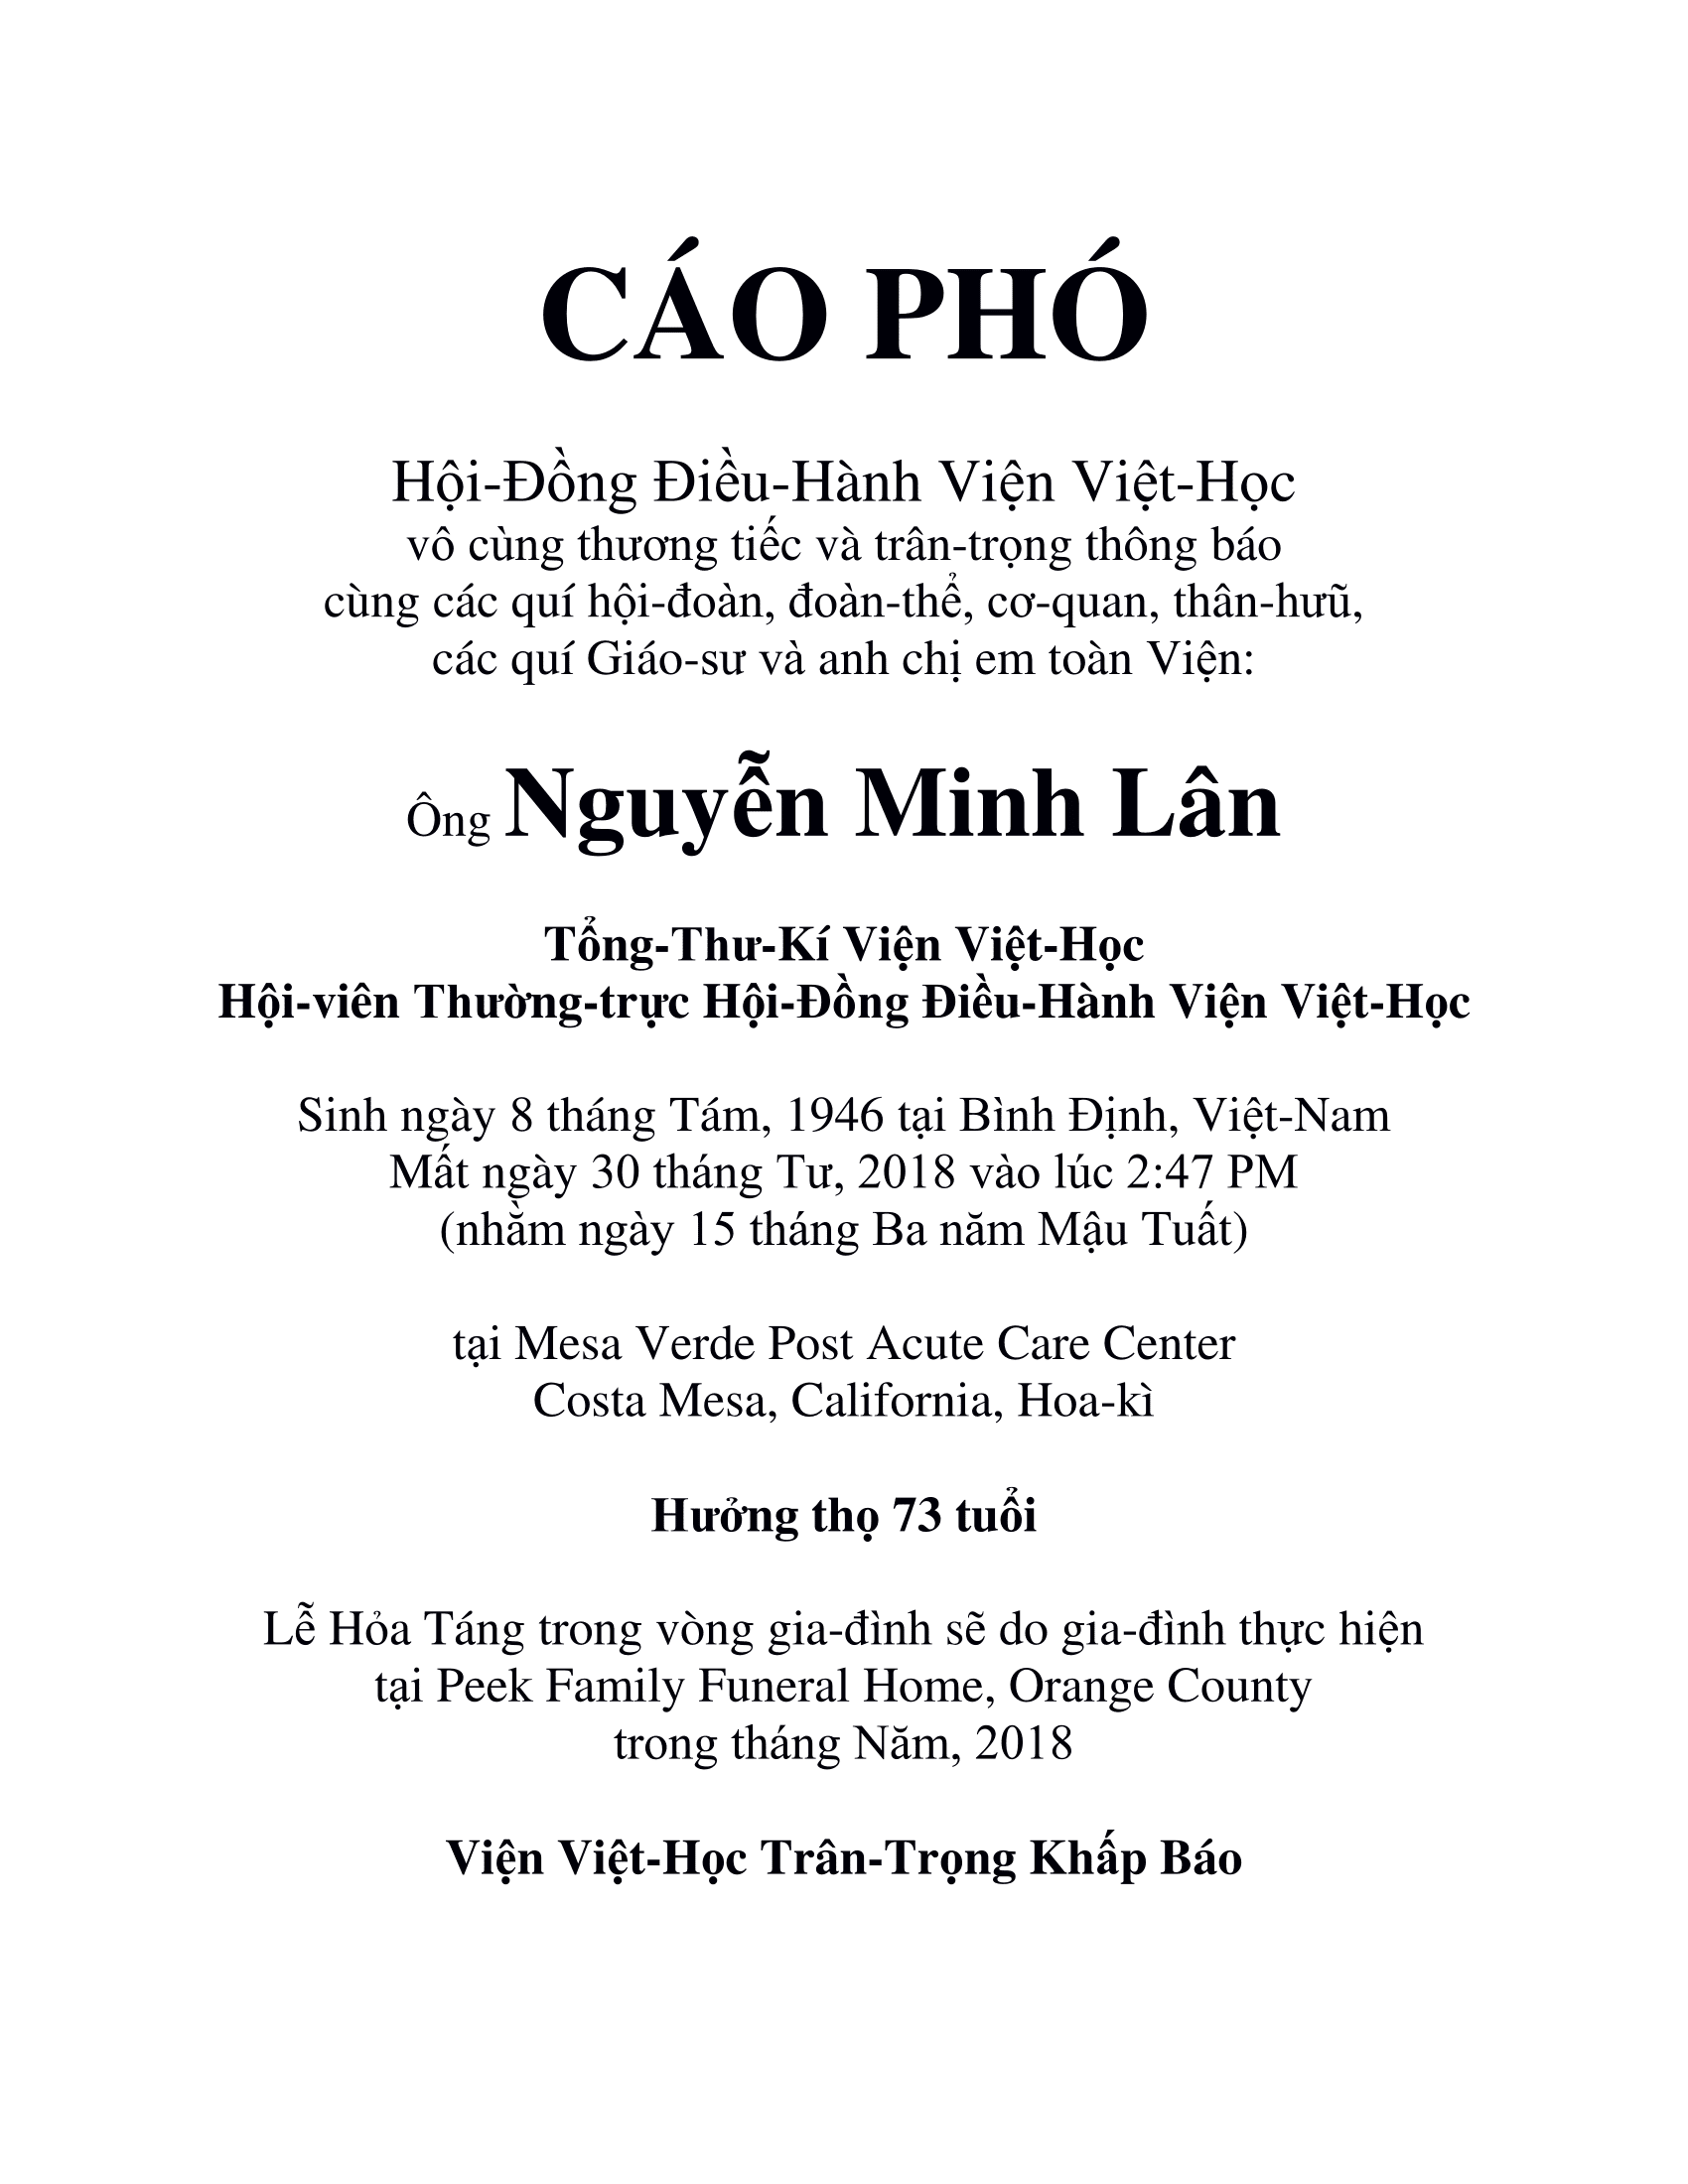 https://sites.google.com/a/viethoc.com/web/upload/VVH_CaoPho_anhNguyenMinhLan___-1.png?attredirects=0